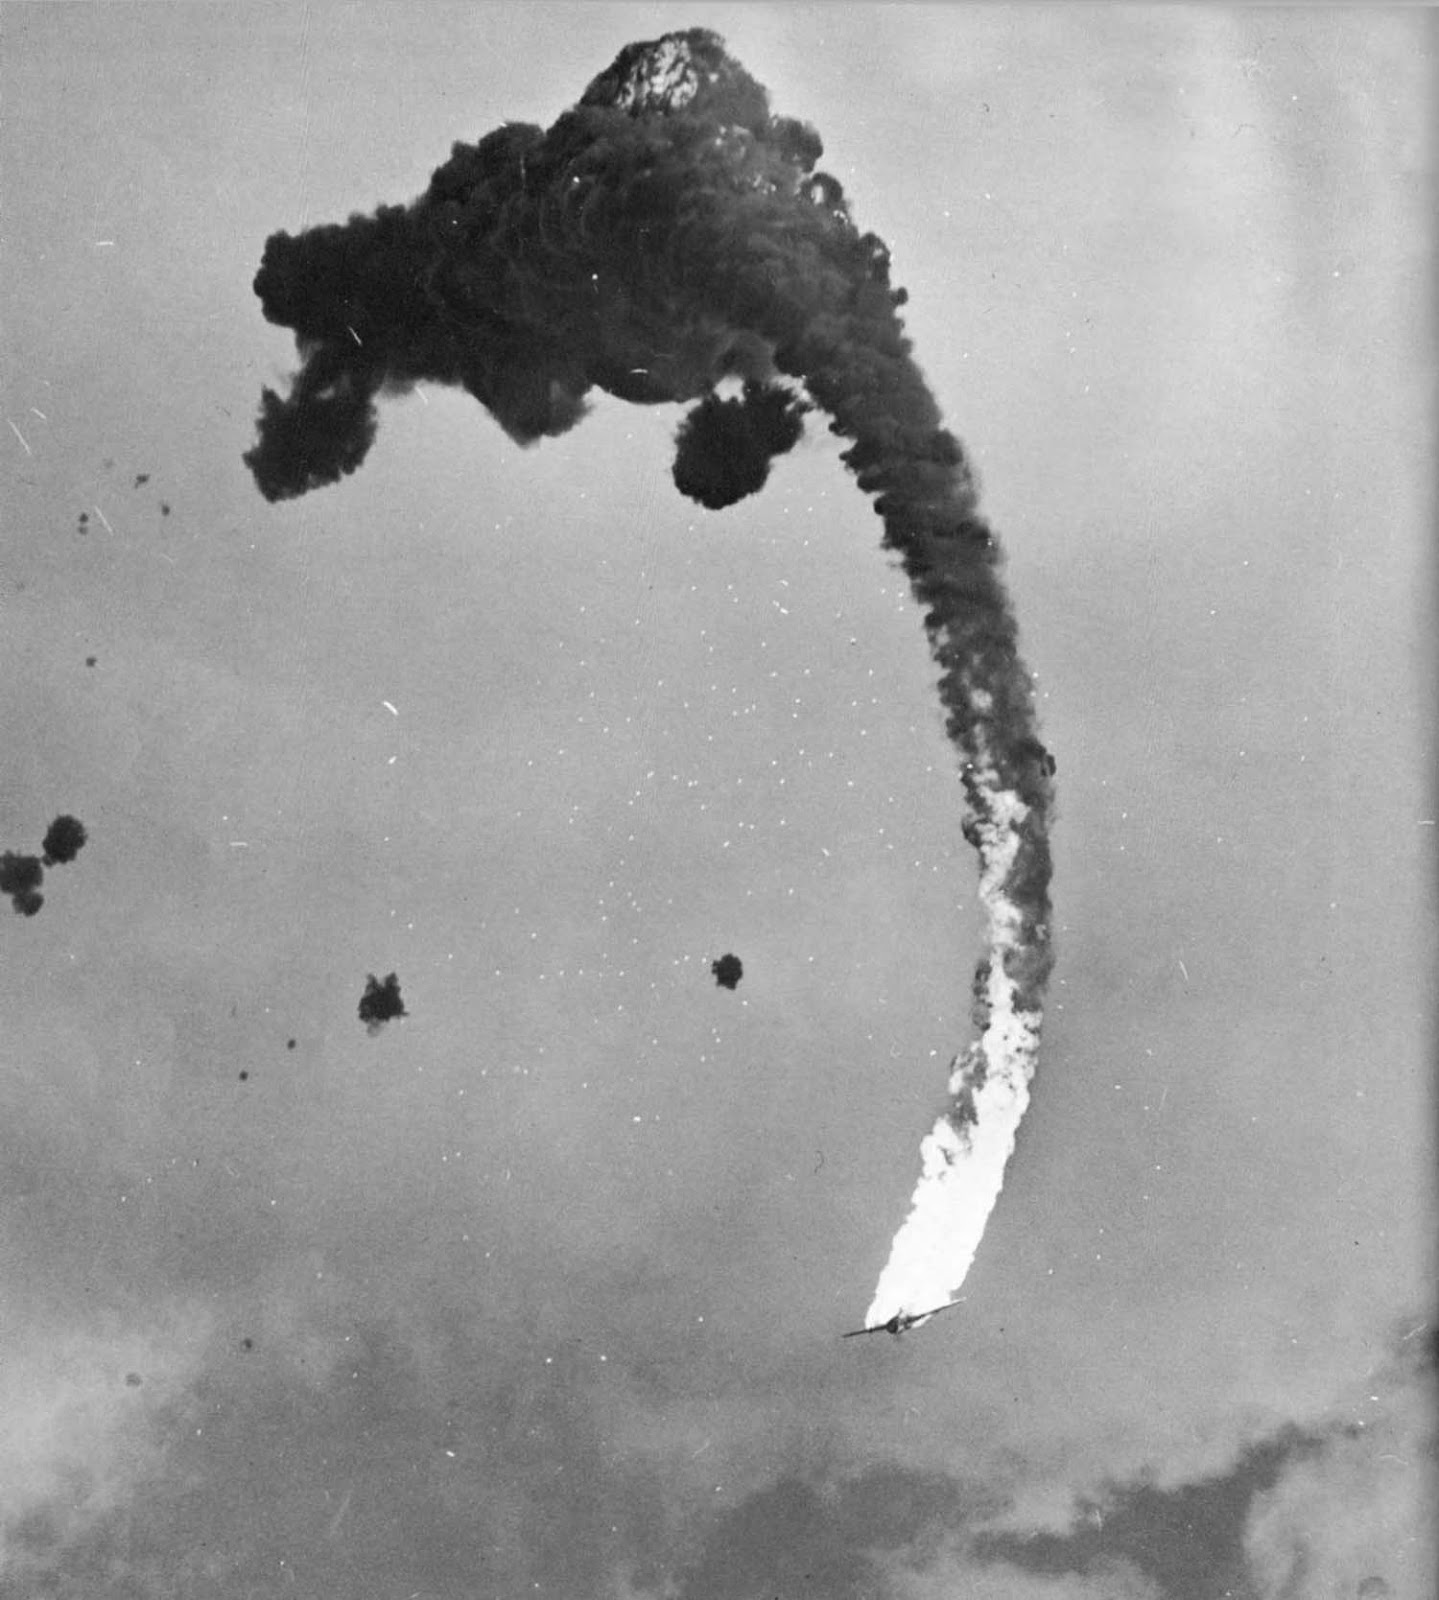 Gunners of the USS Hornet score a direct hit on Japanese bomber, March 18, 1945. The aircraft it a Yokosuka D4Y Suisei.